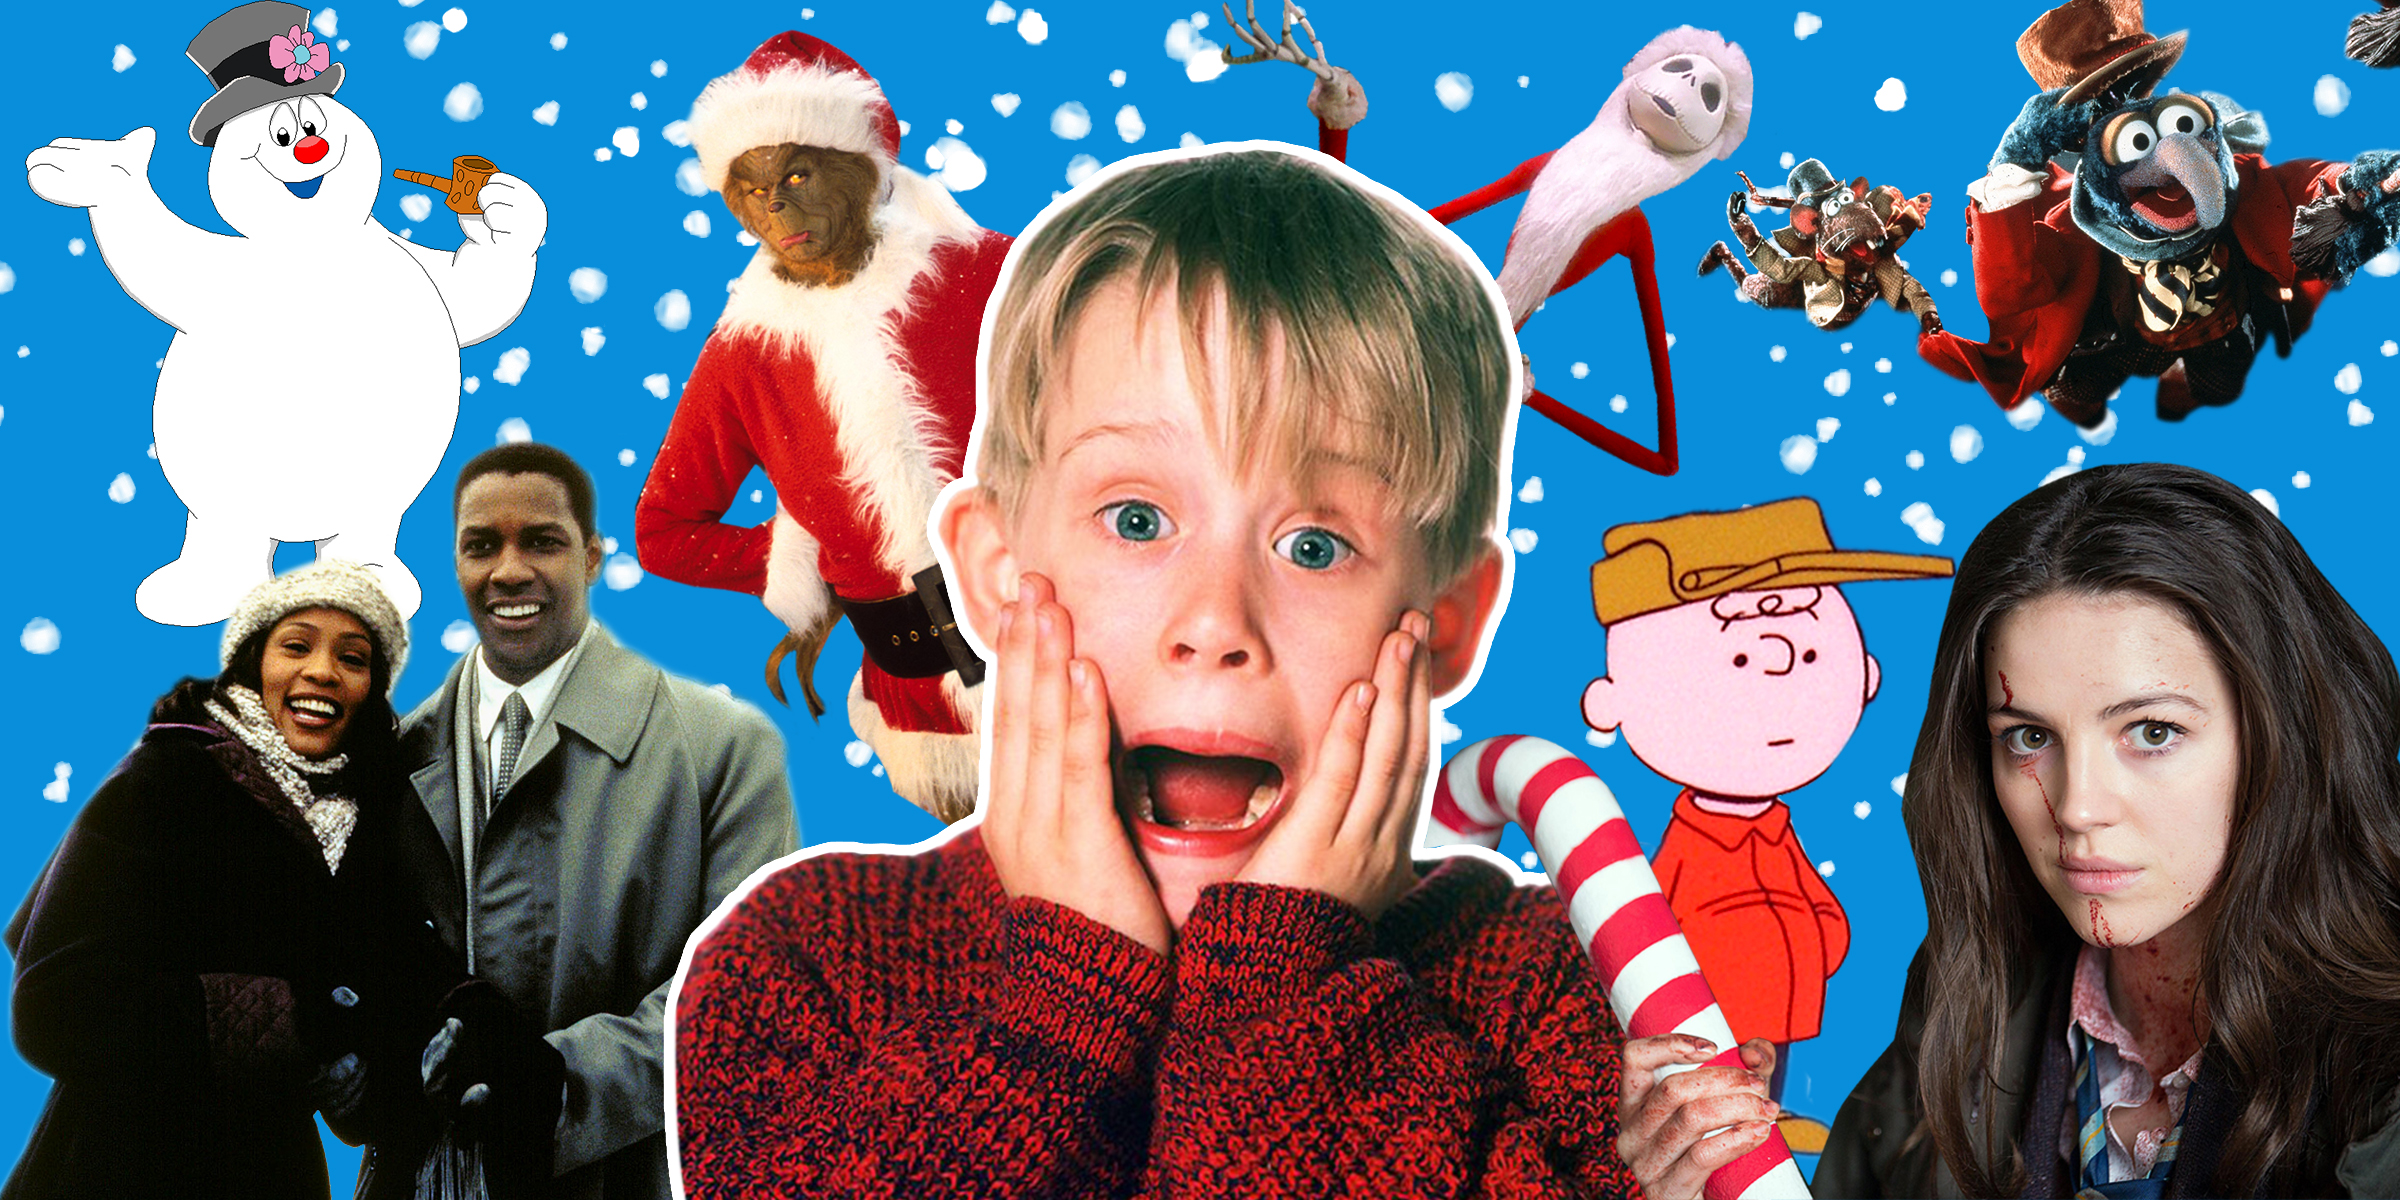 75 Best Christmas Movies Of All Time For The 2019 Holidays Ranked